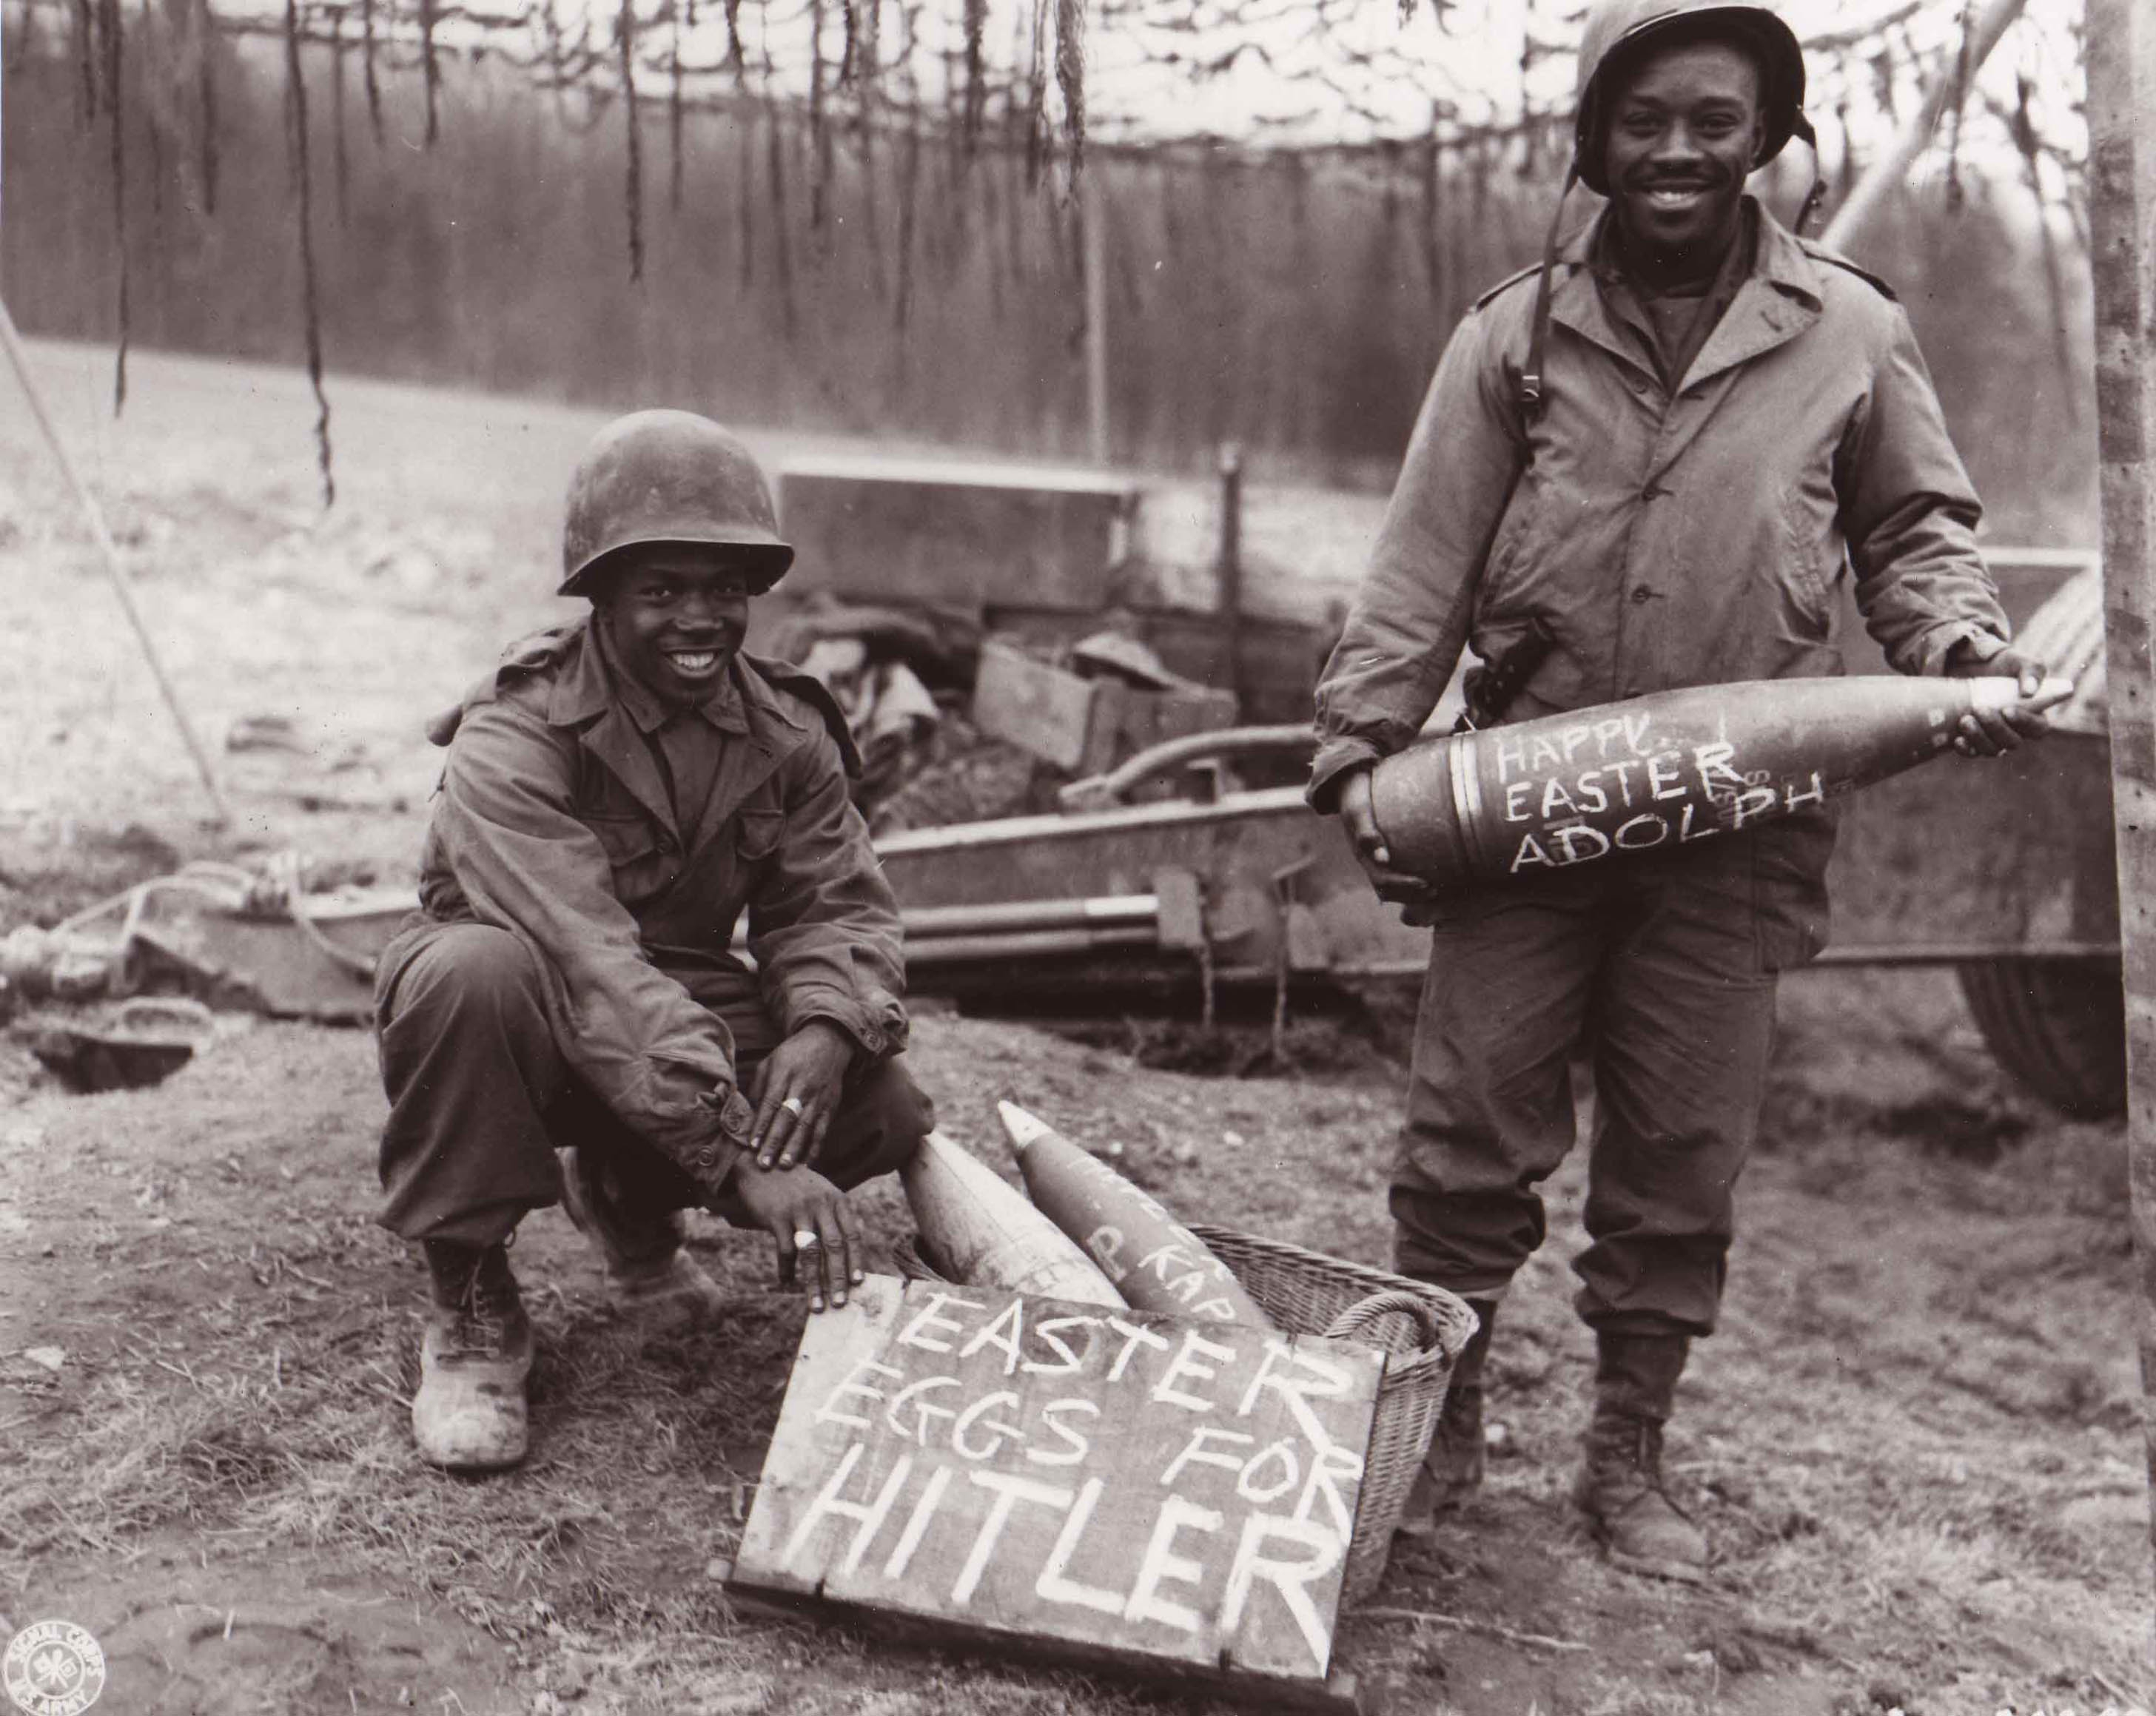 US Army WWII Field Artillery with Message for Hitler